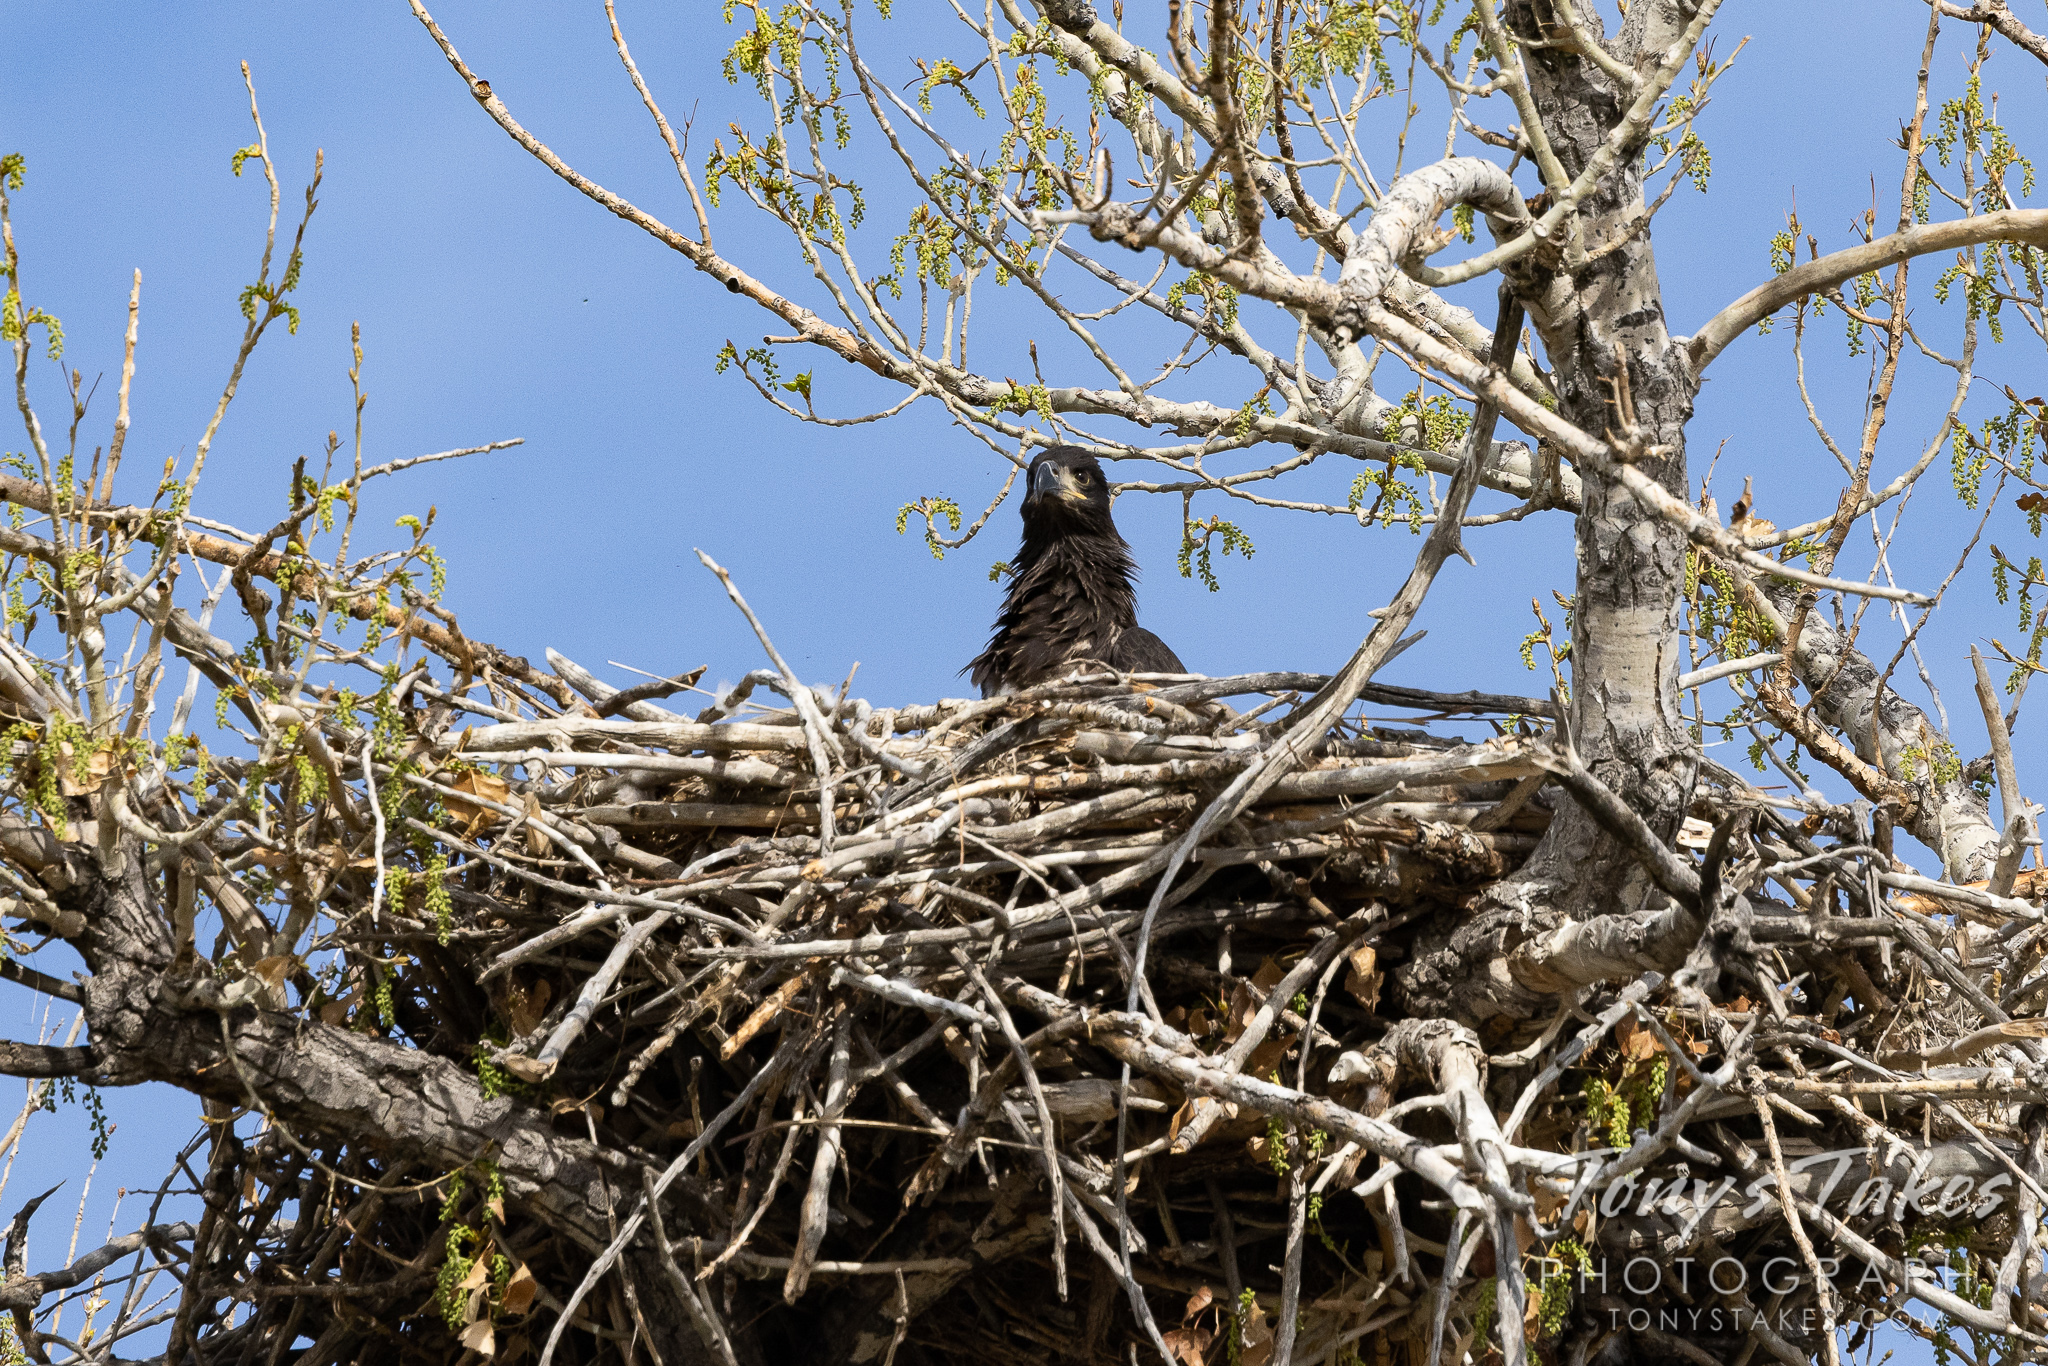 A bald eagle eaglet looks out from its nest. (© Tony's Takes)